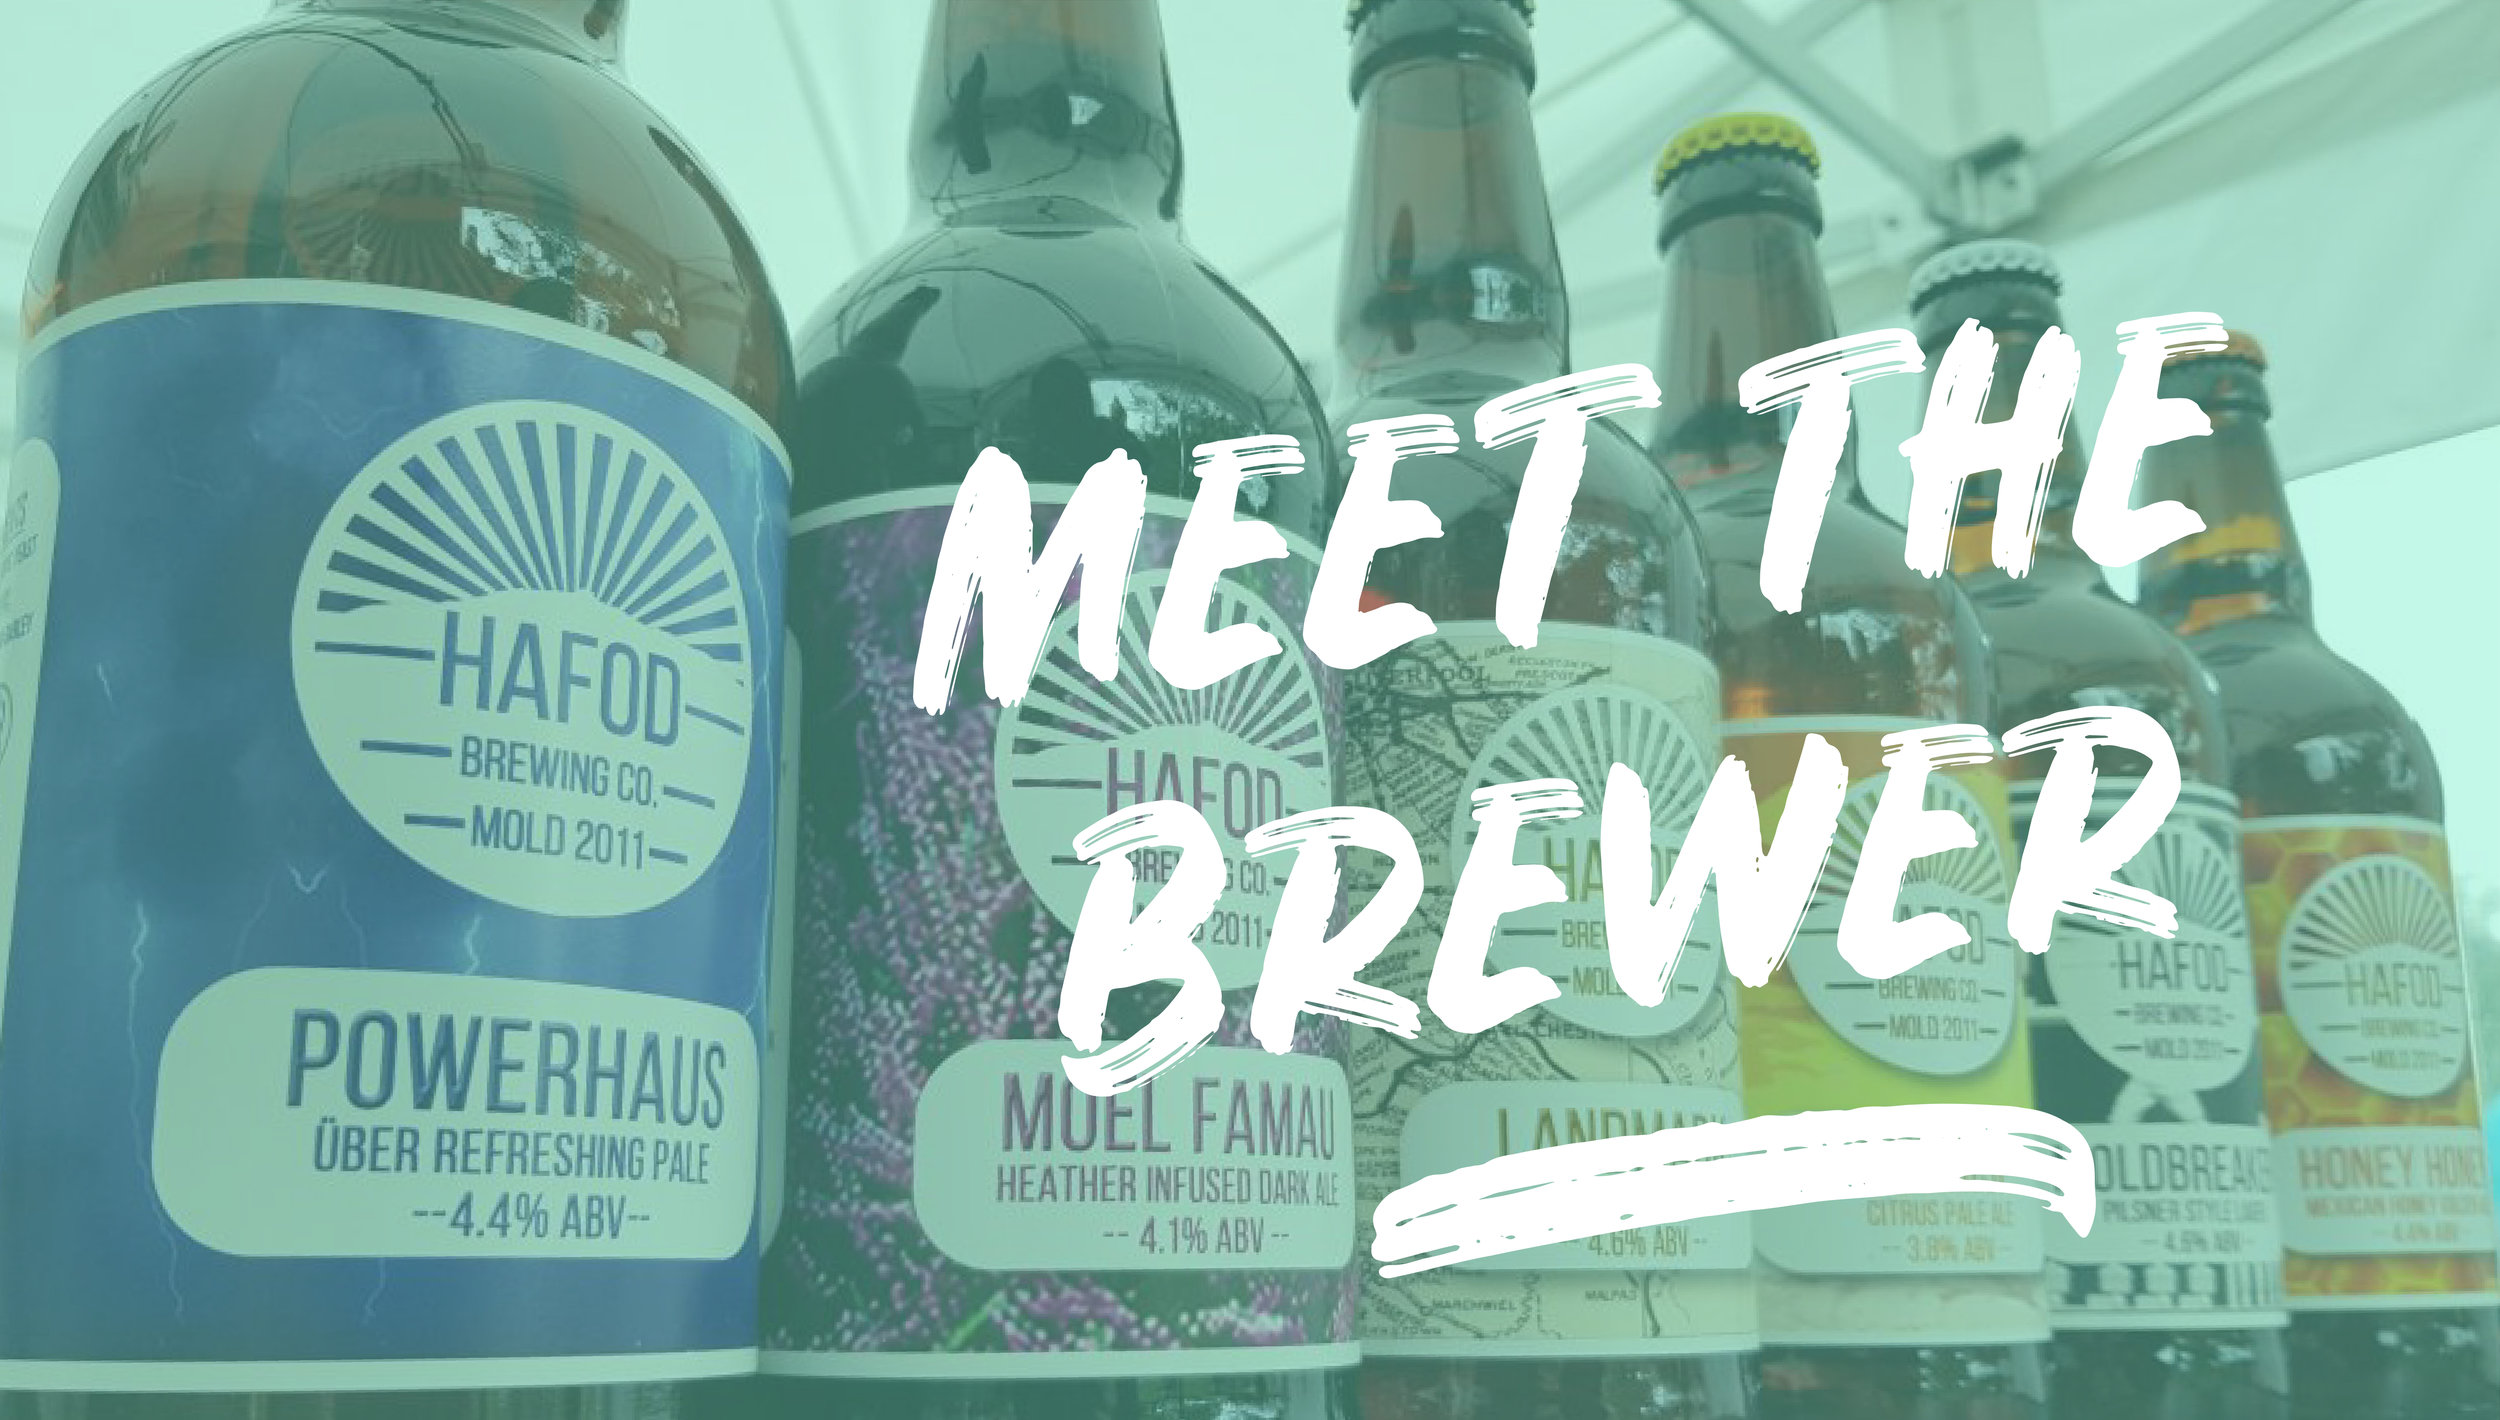 MEETTHEBREWER-01.jpg